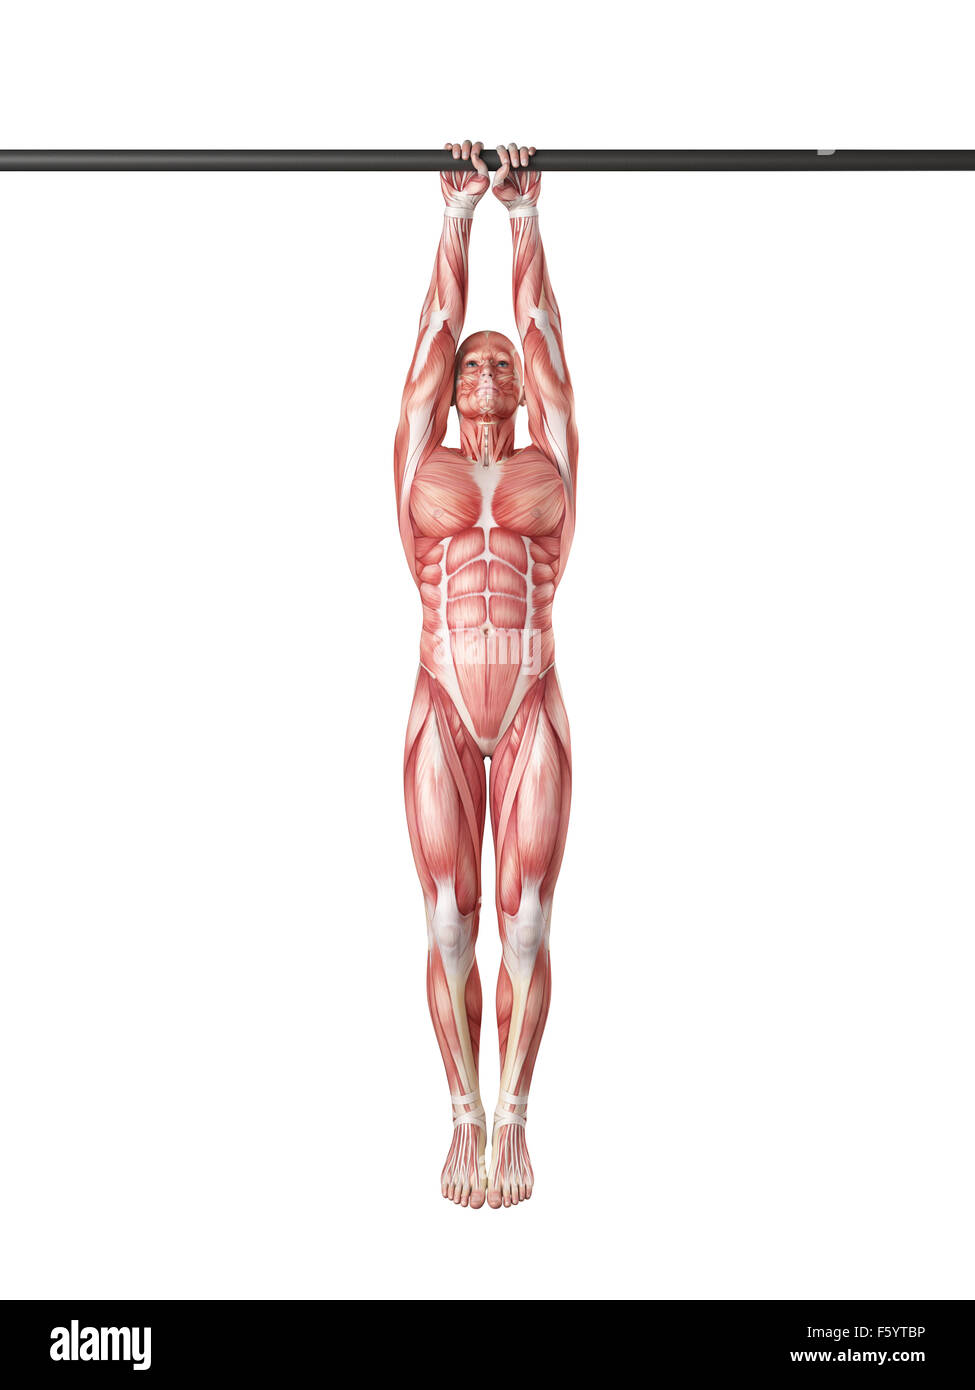 exercise illustration - close grip pull ups - Stock Image